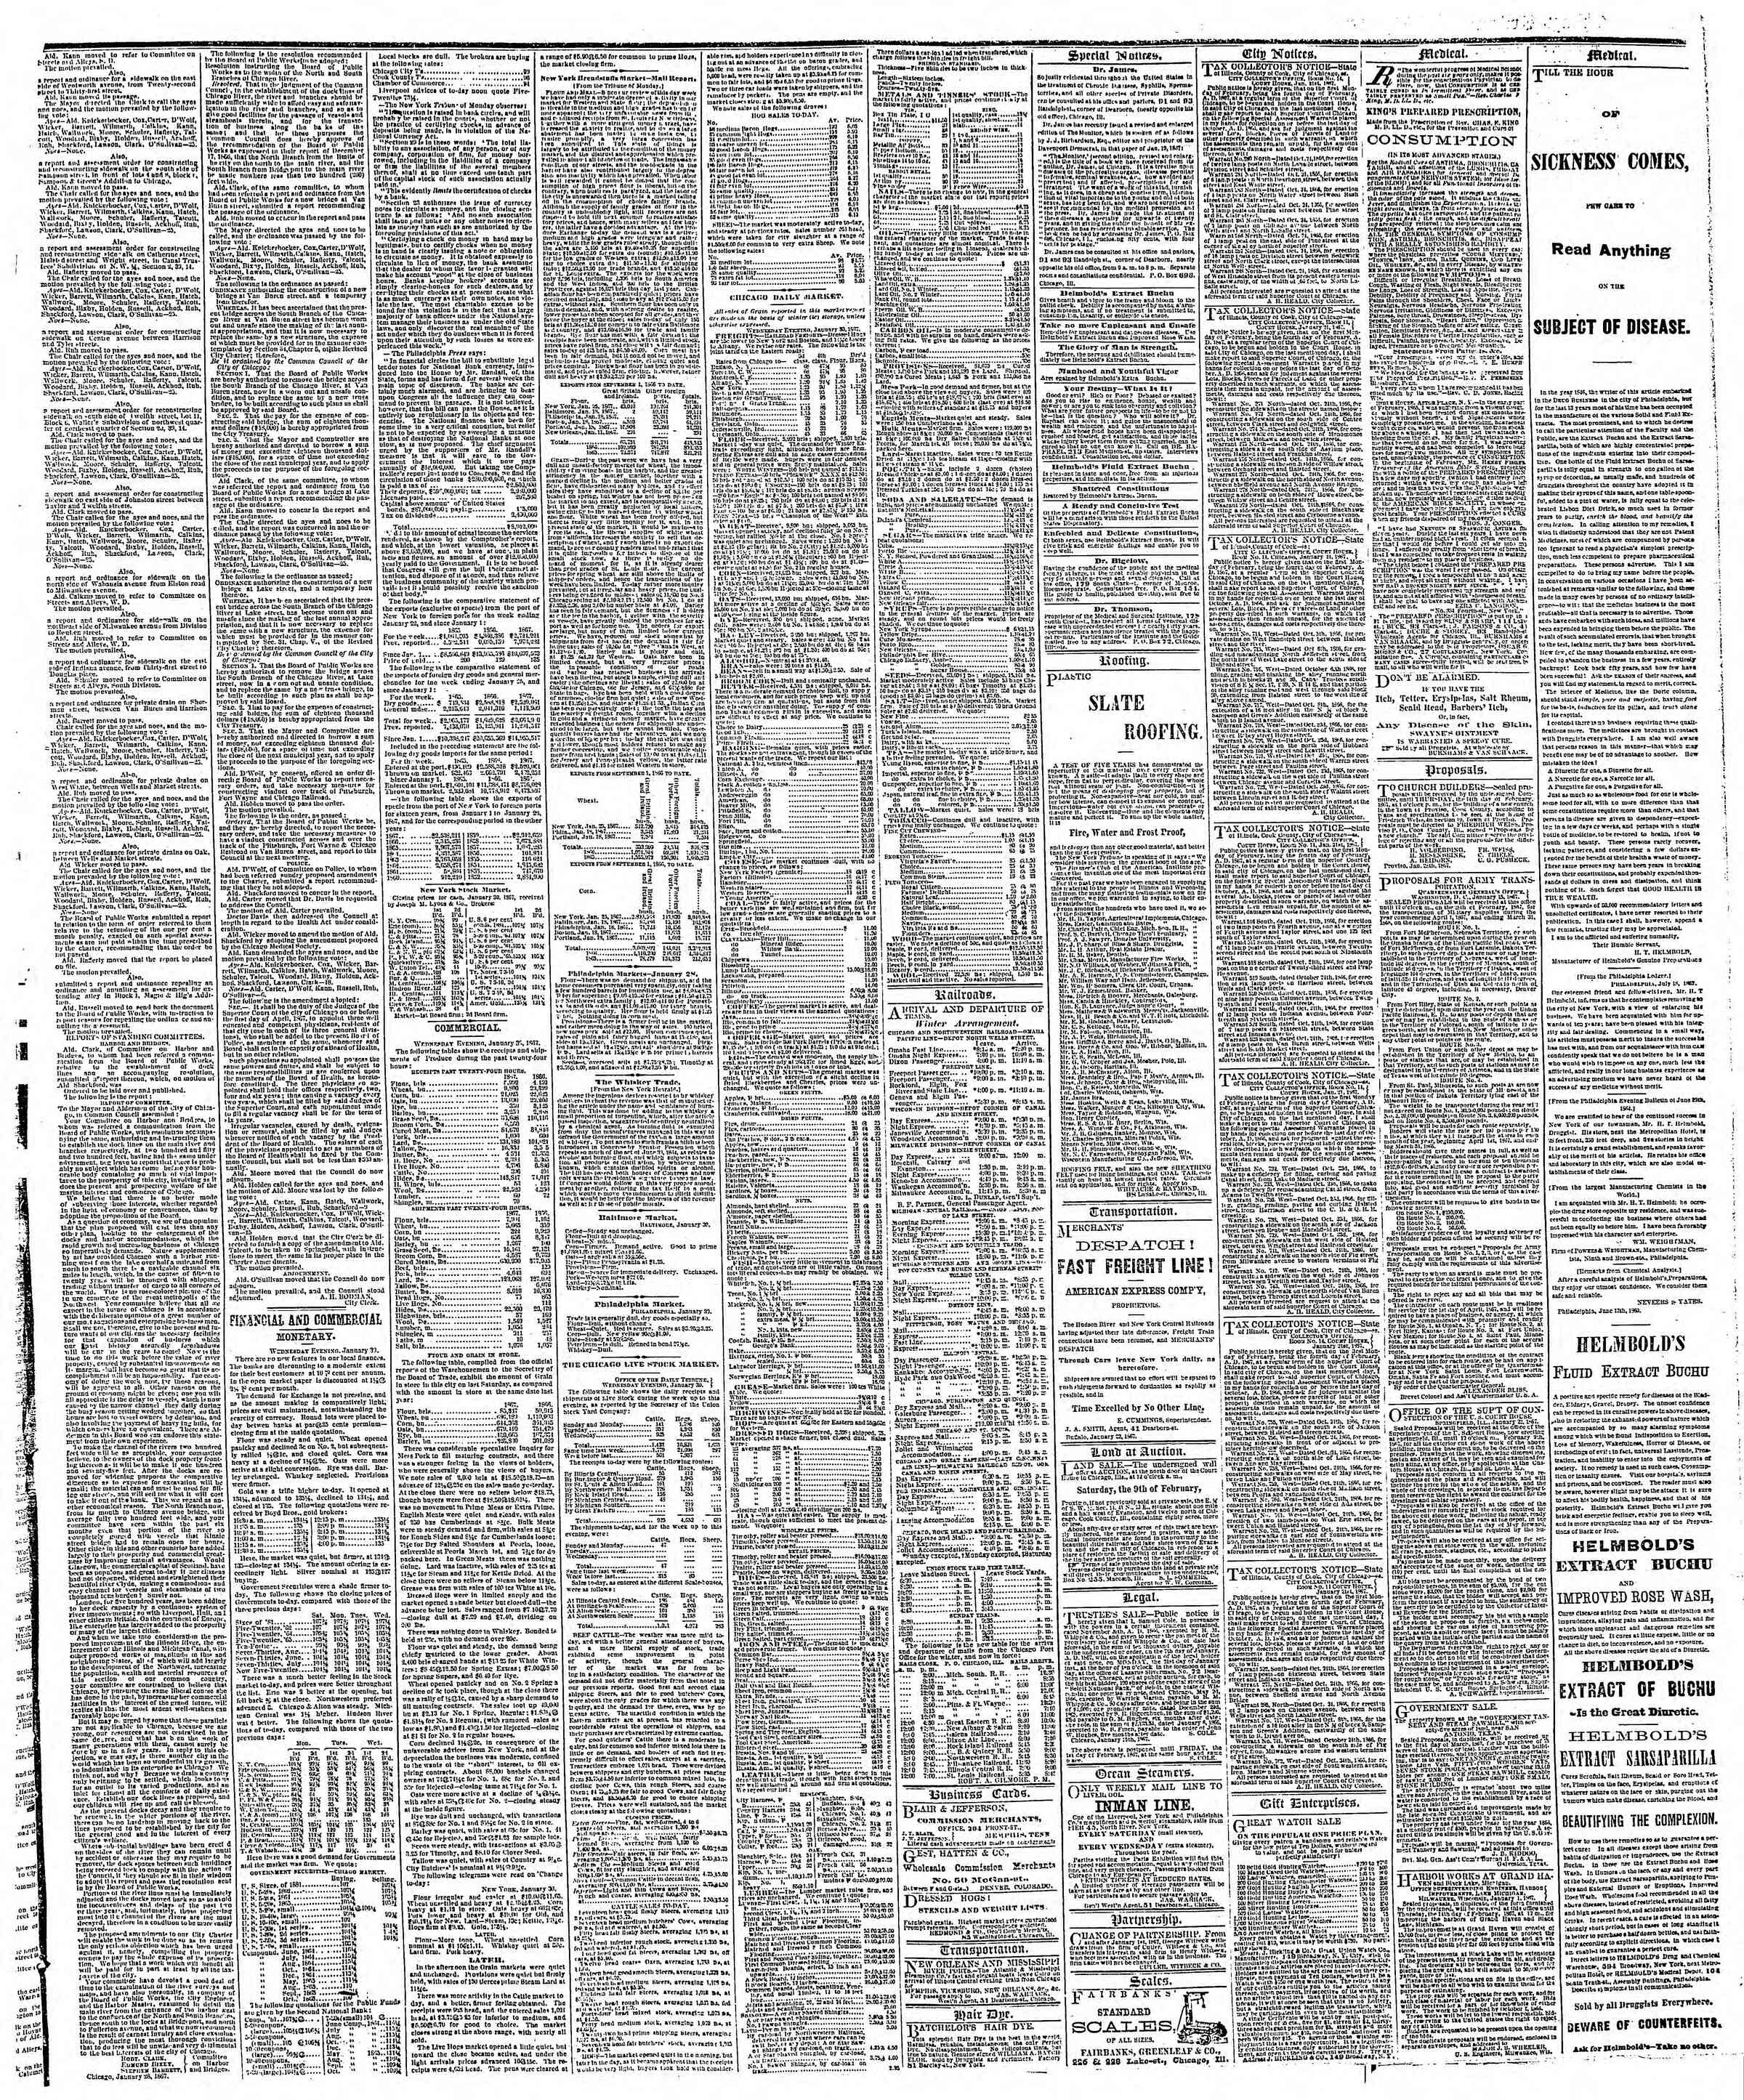 Newspaper of The Chicago Tribune dated 31 Ocak 1867 Page 3